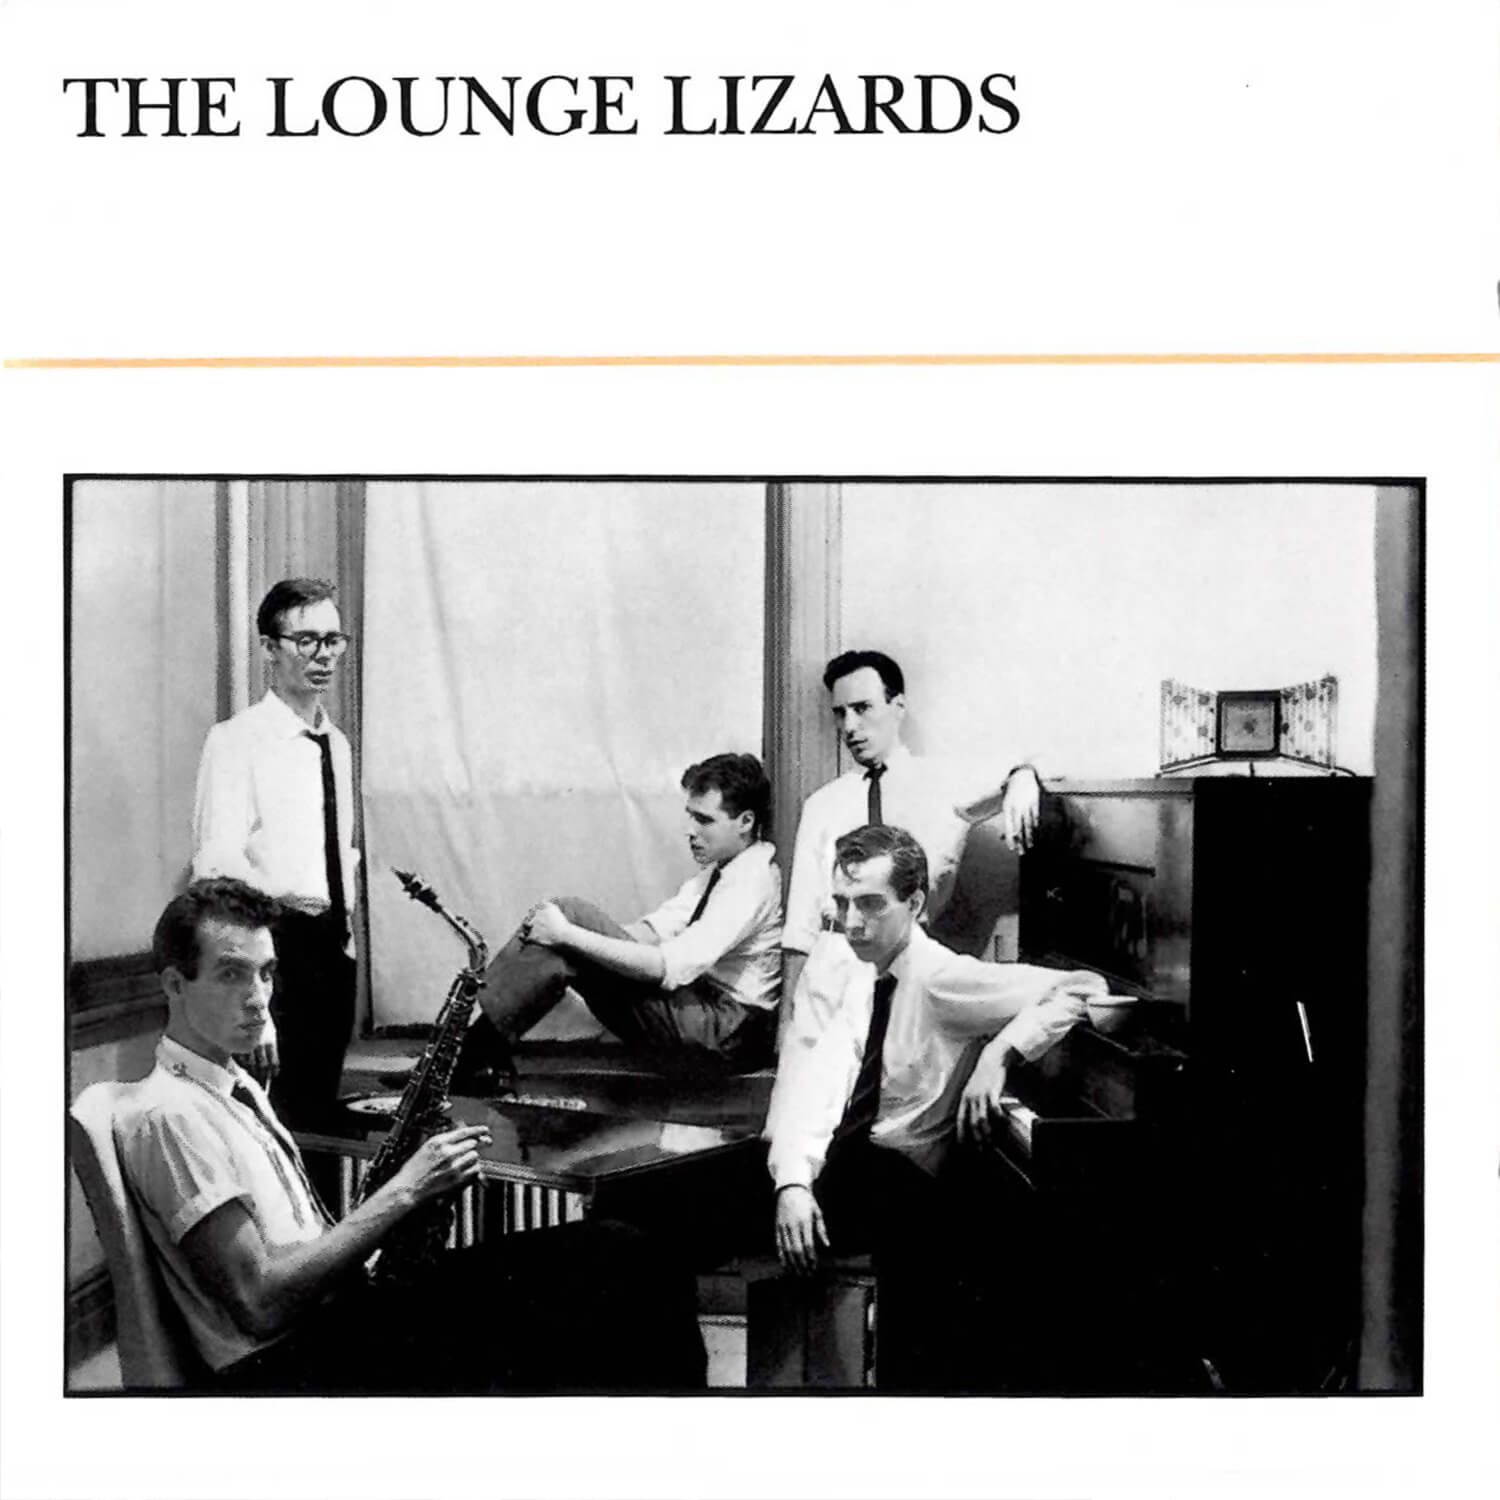 JDL_Peter-Saville_THE-LOUNGE-LIZARDS